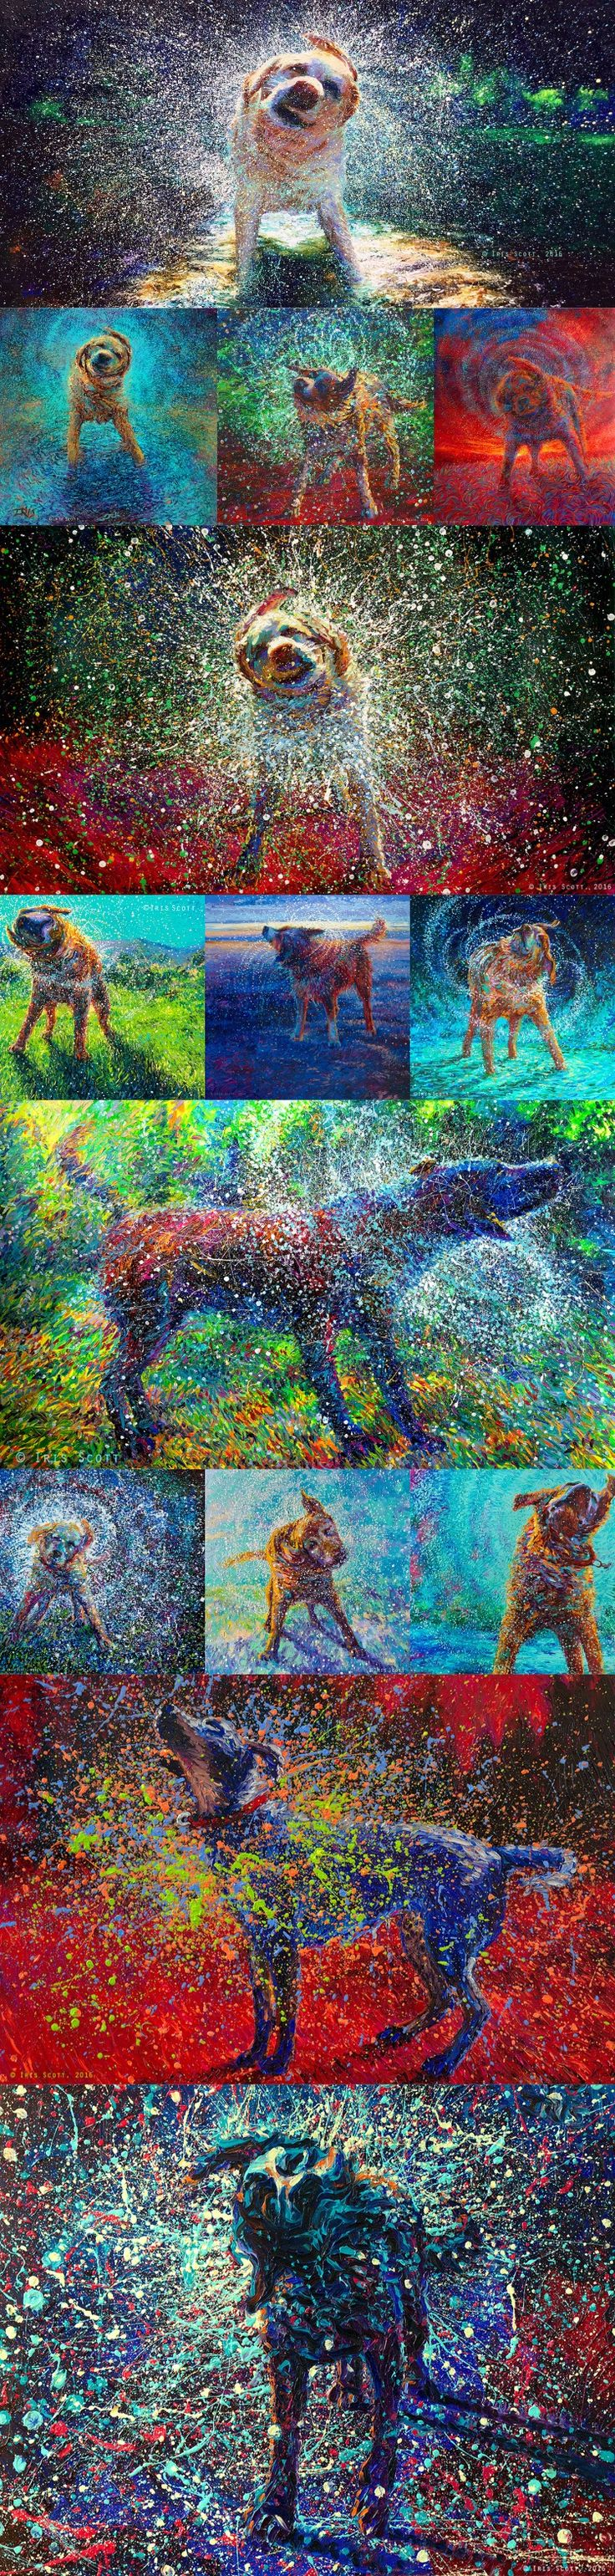 iris scott, art, painting, finger paintings, animals, dogs